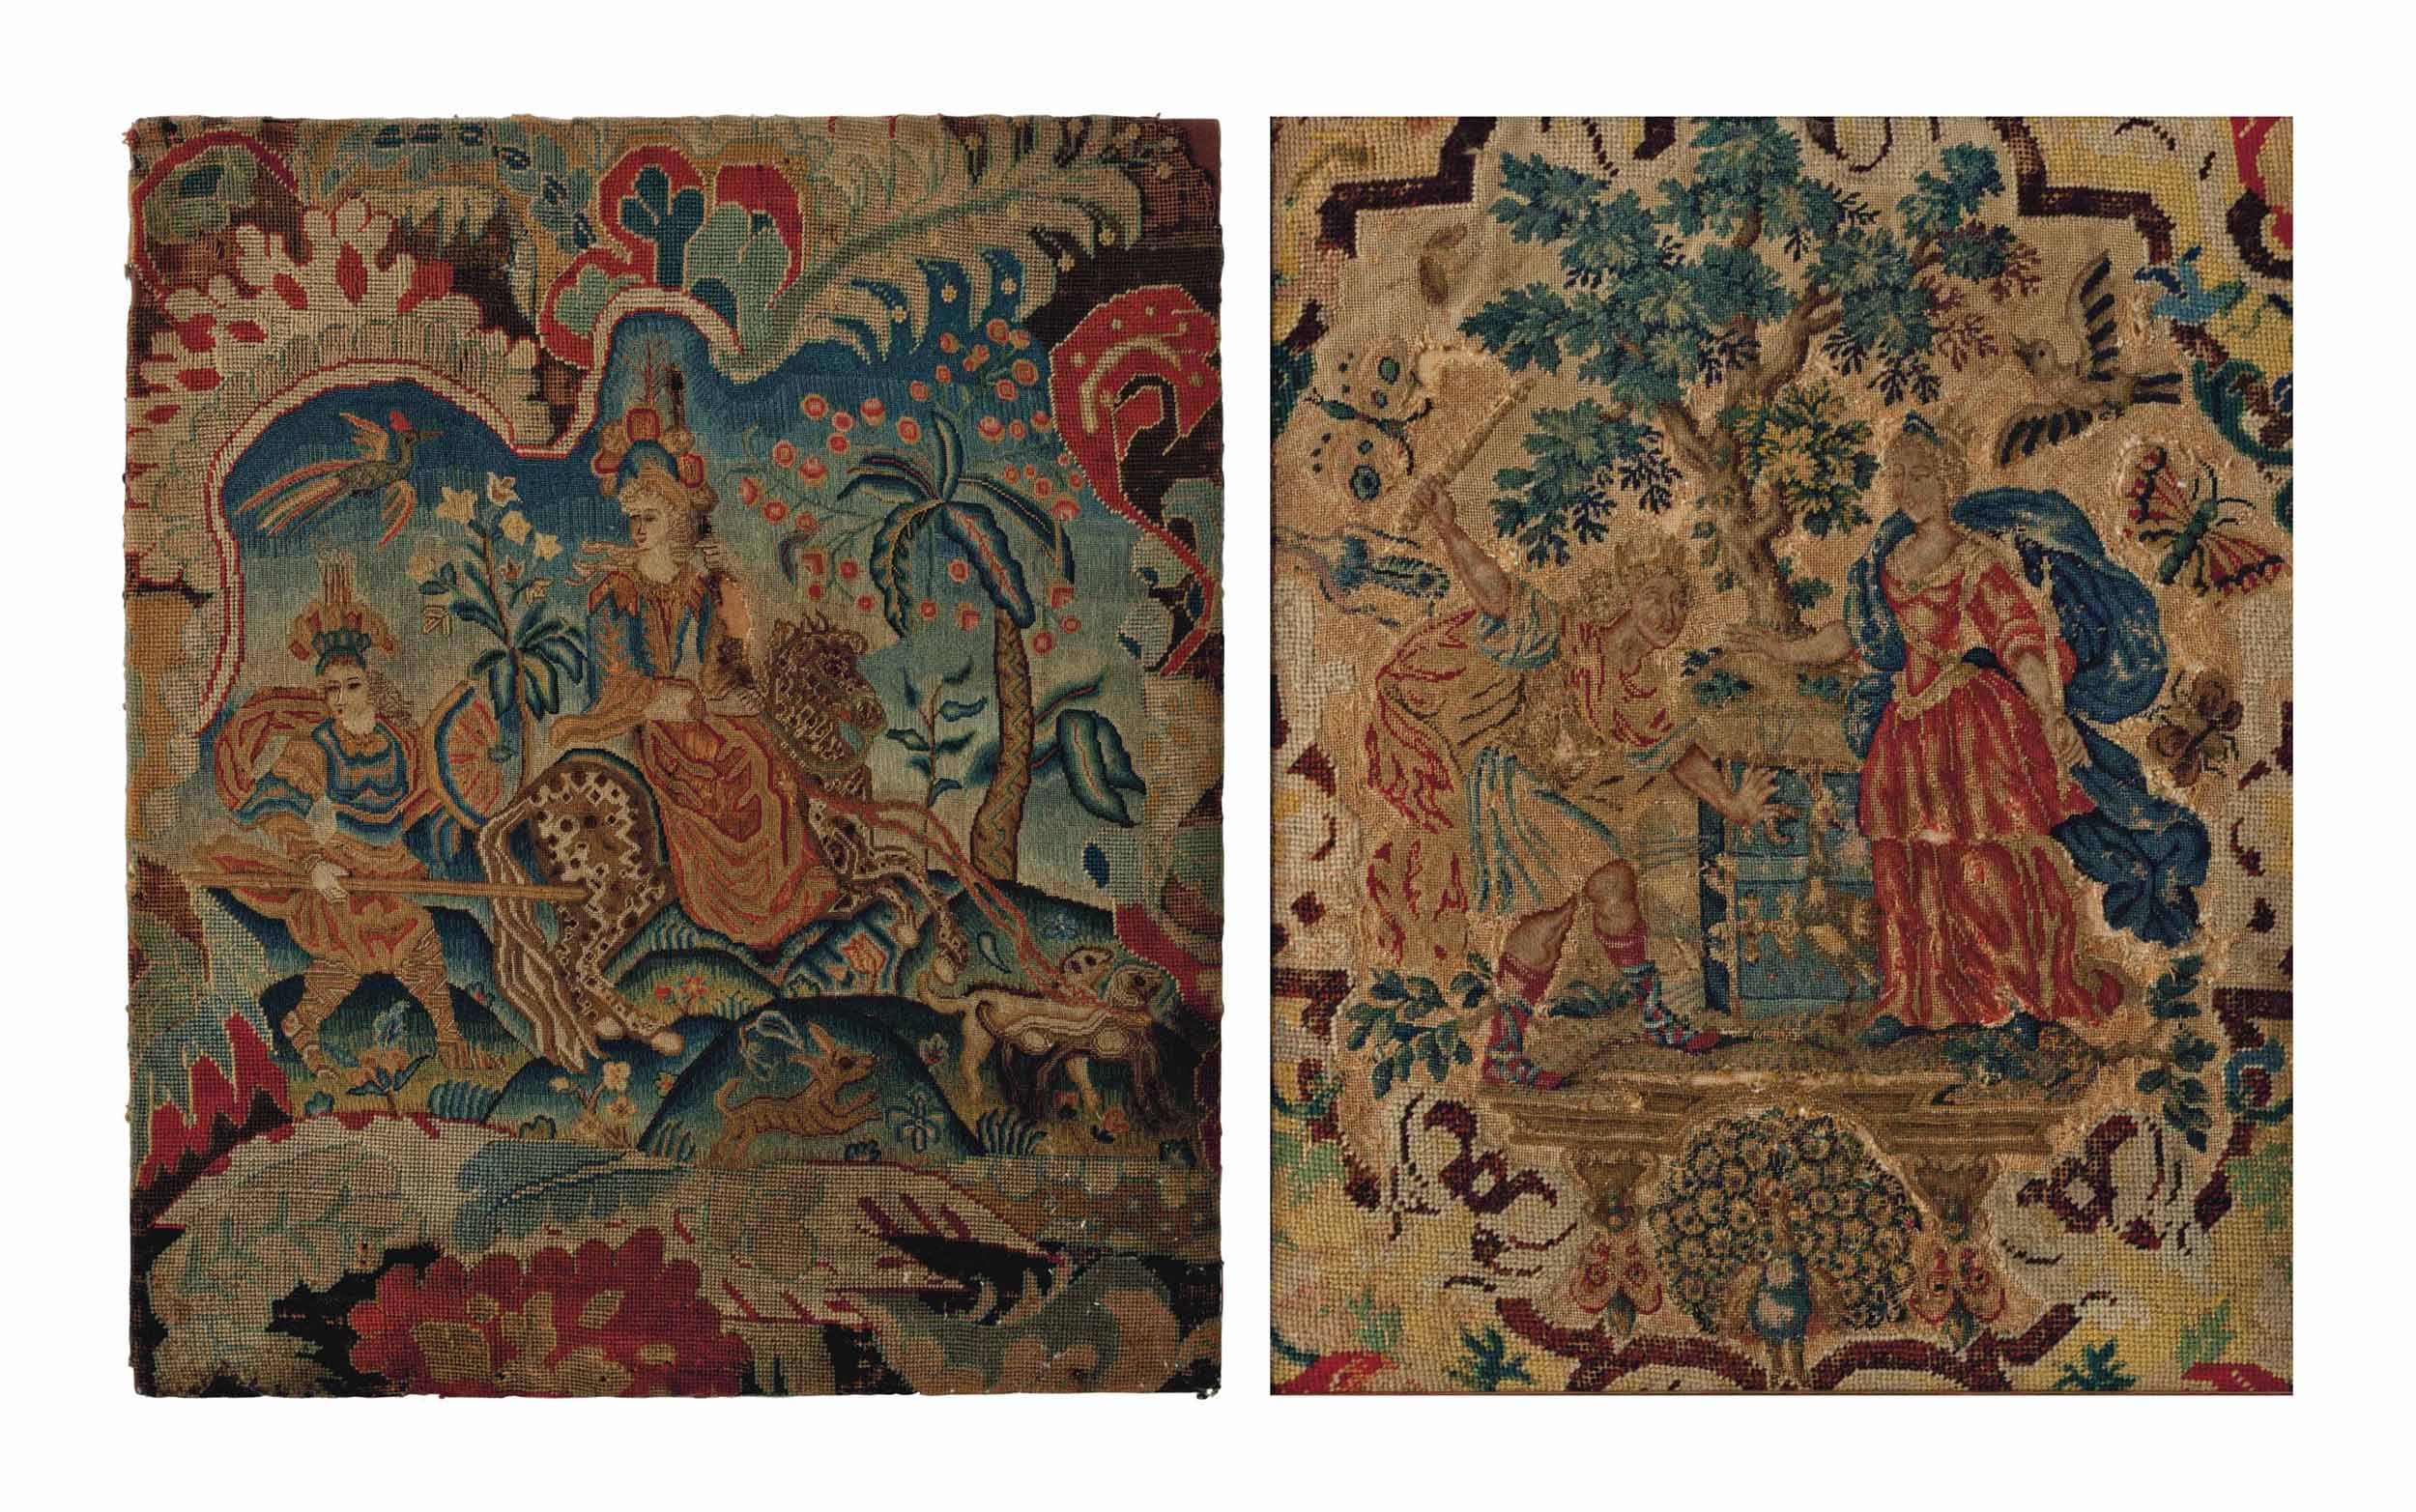 TWO ENGLISH NEEDLEWORK PANELS